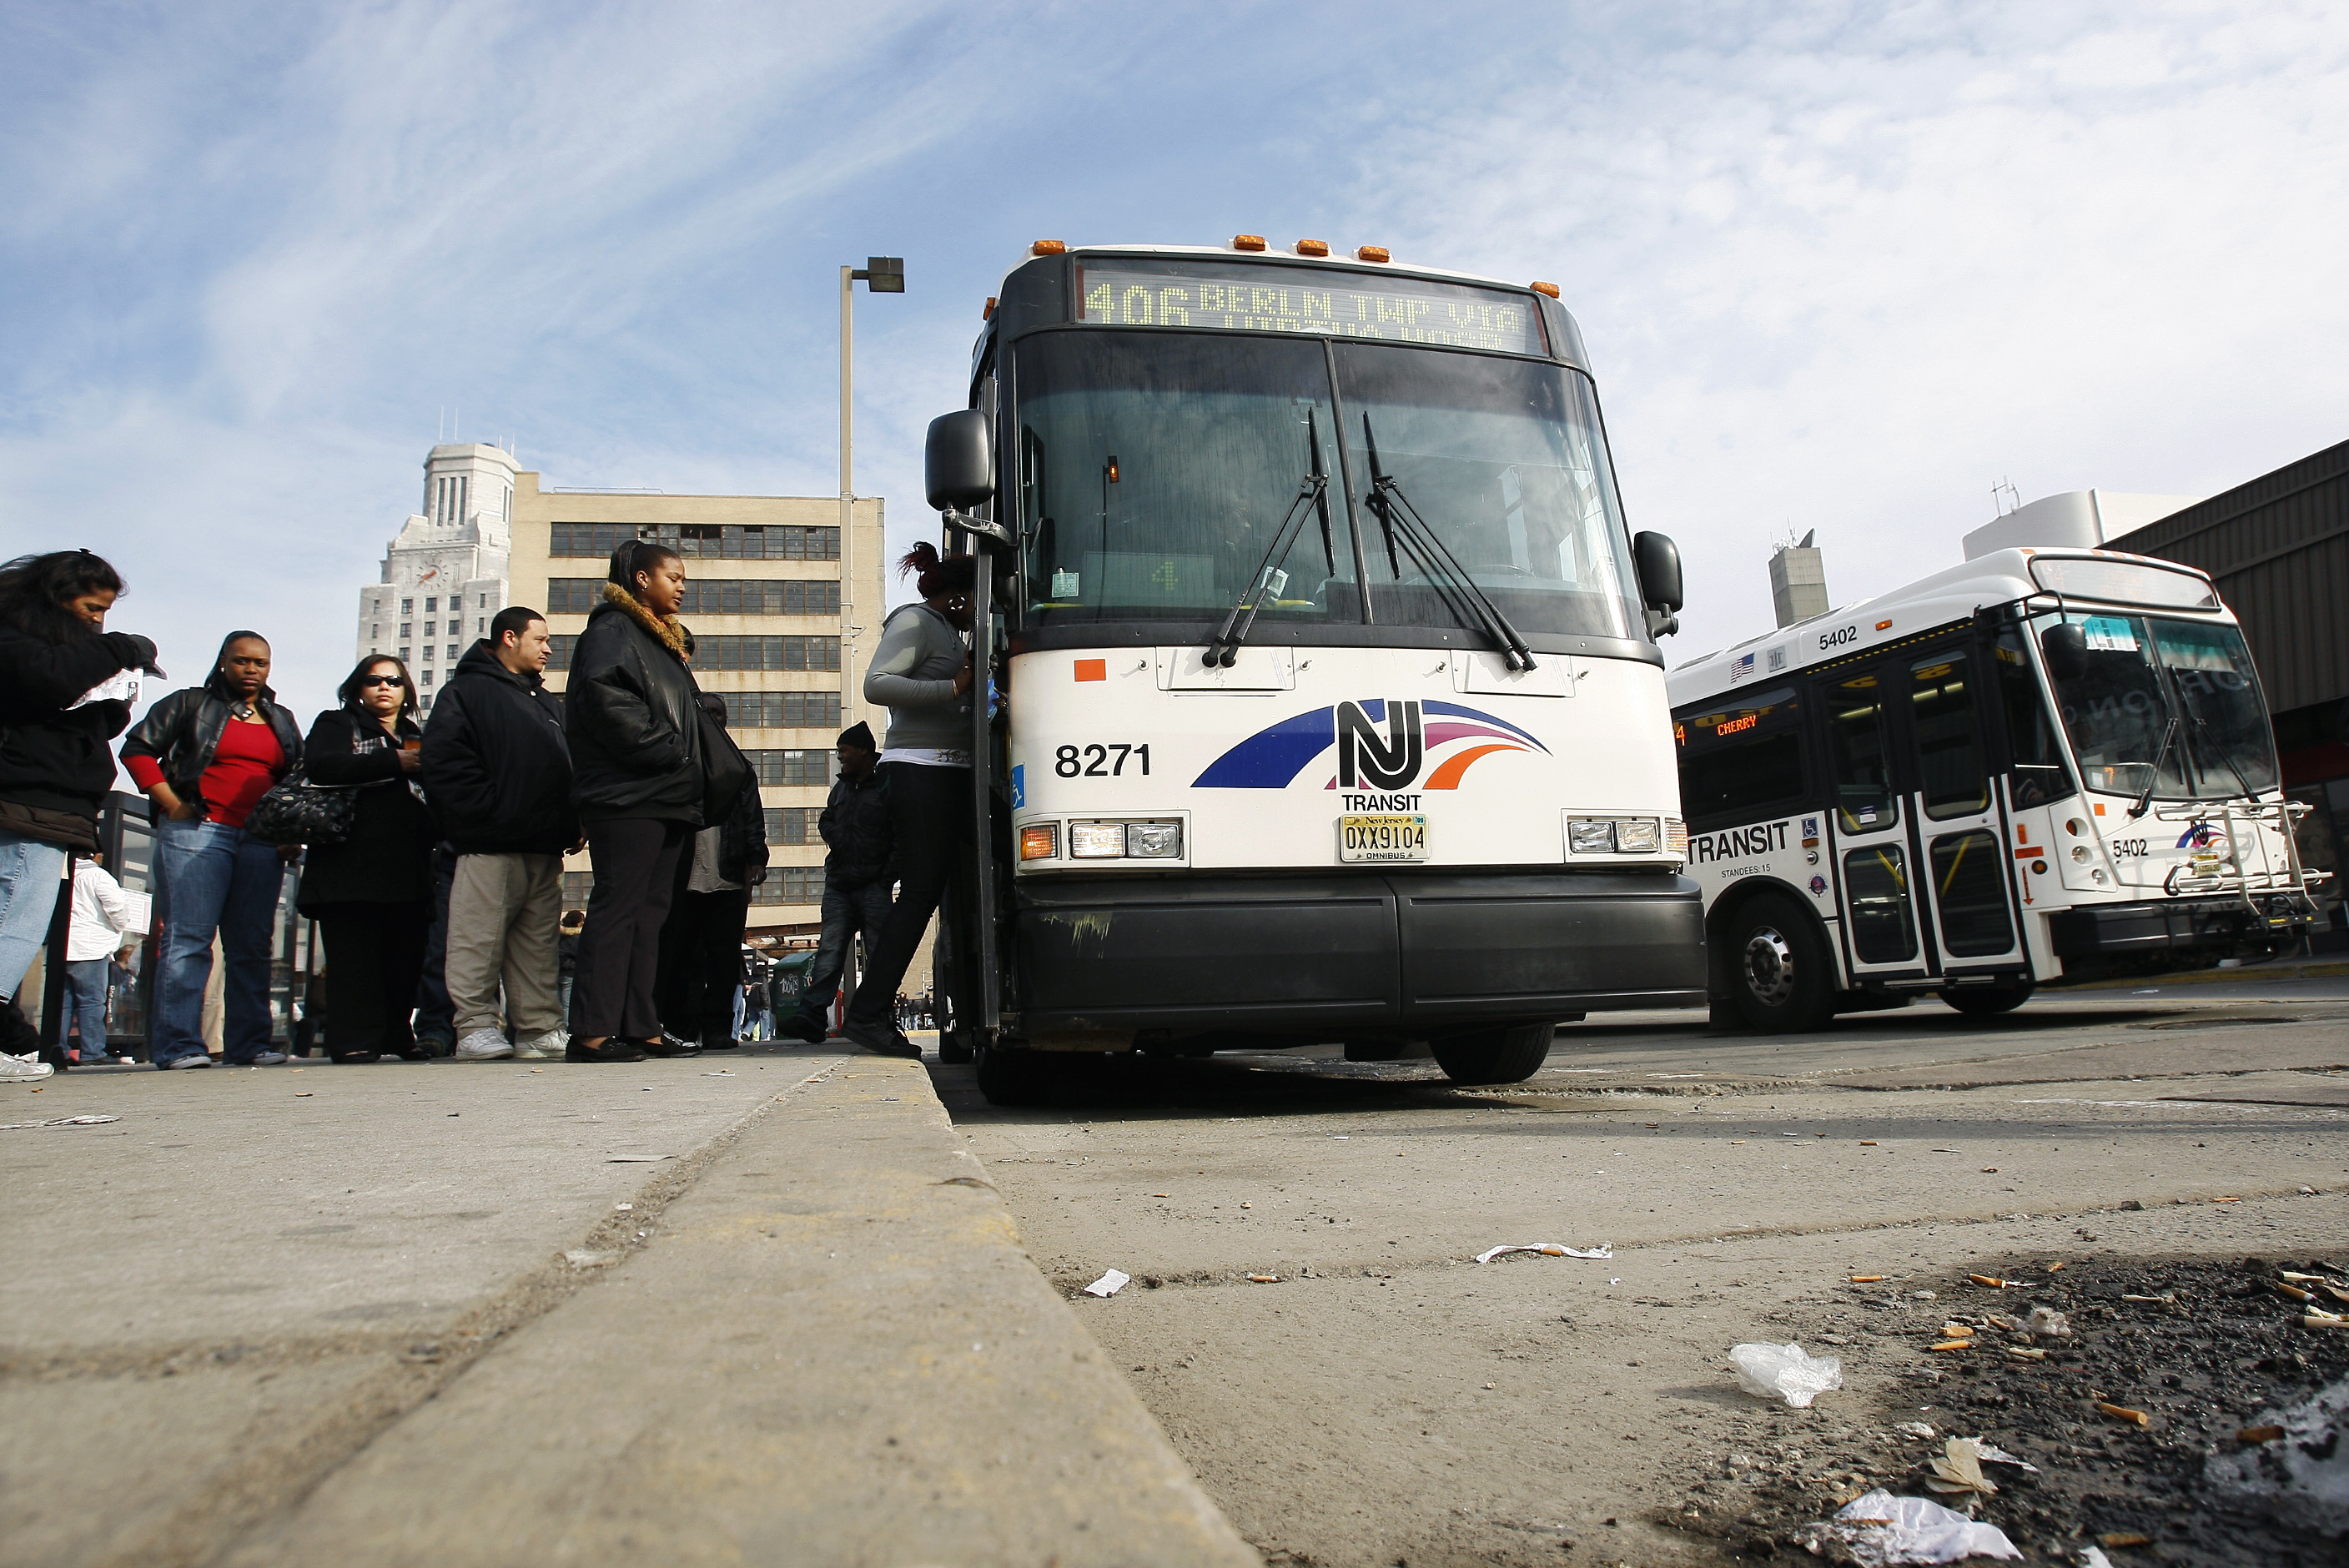 NJ Transit bus riders complain of late service, no amenities at stops